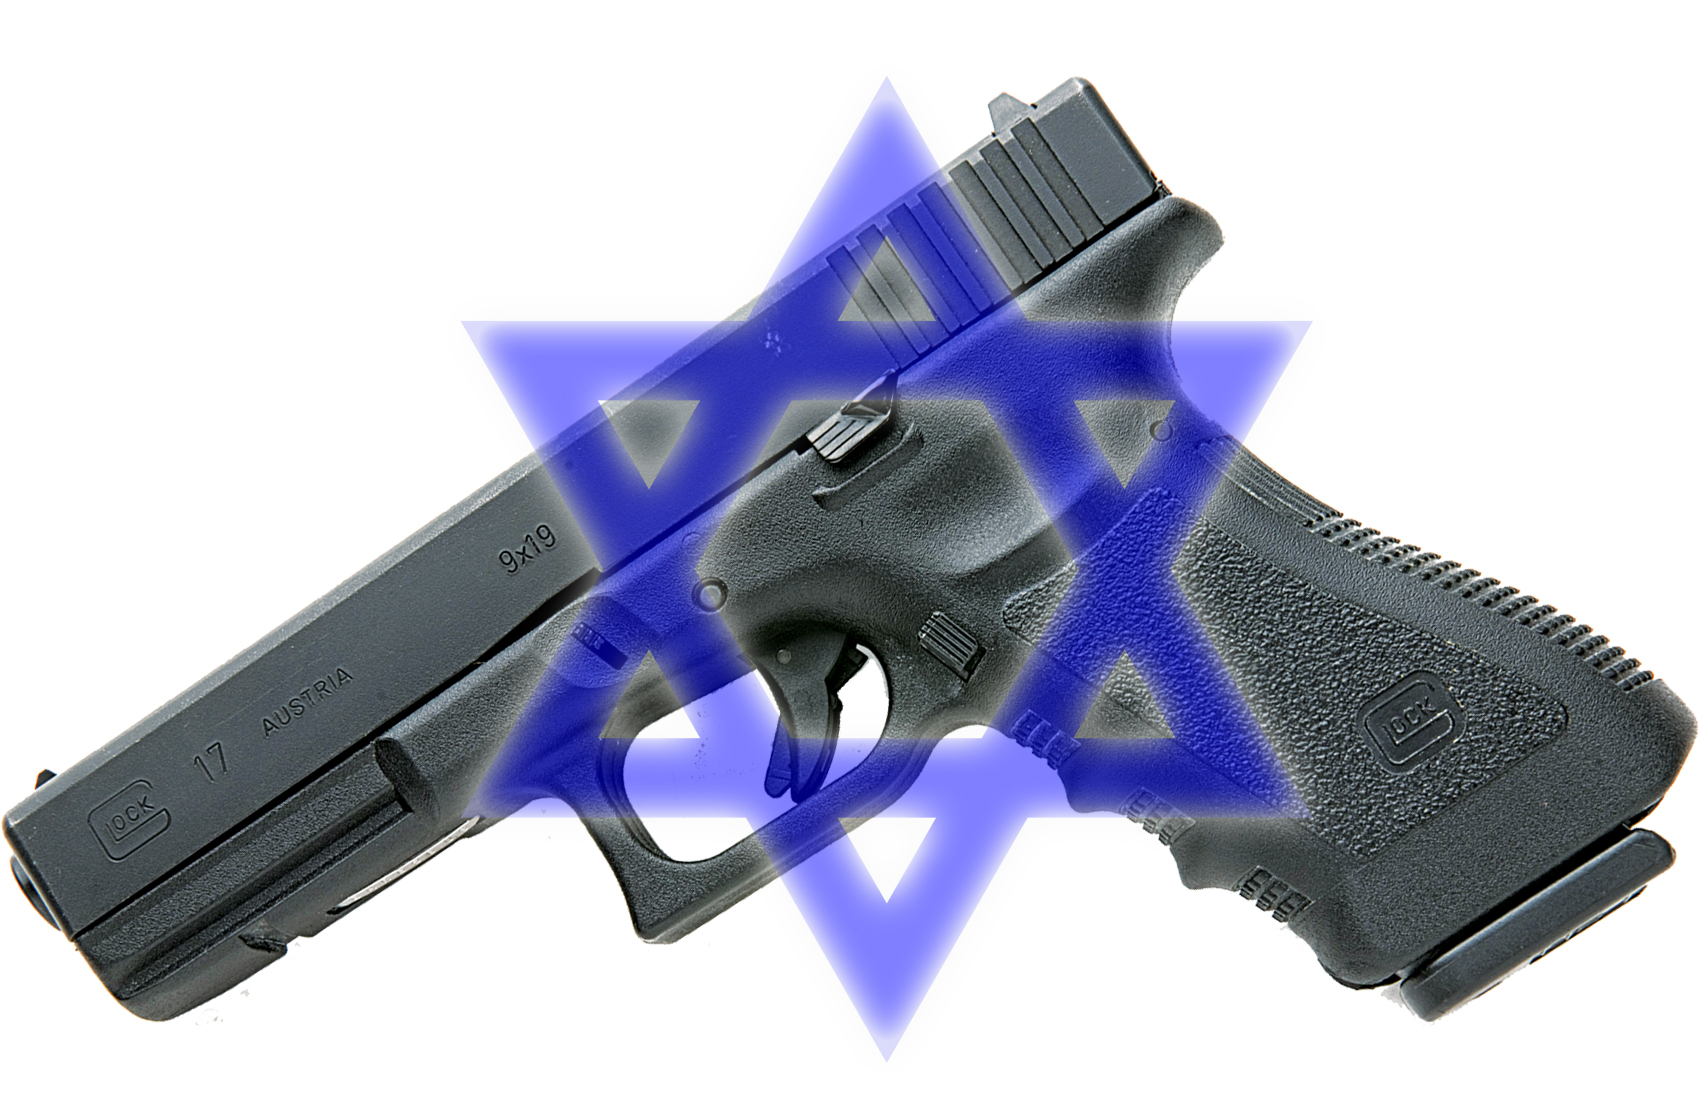 Let European Jews Carry Guns: Rabbi